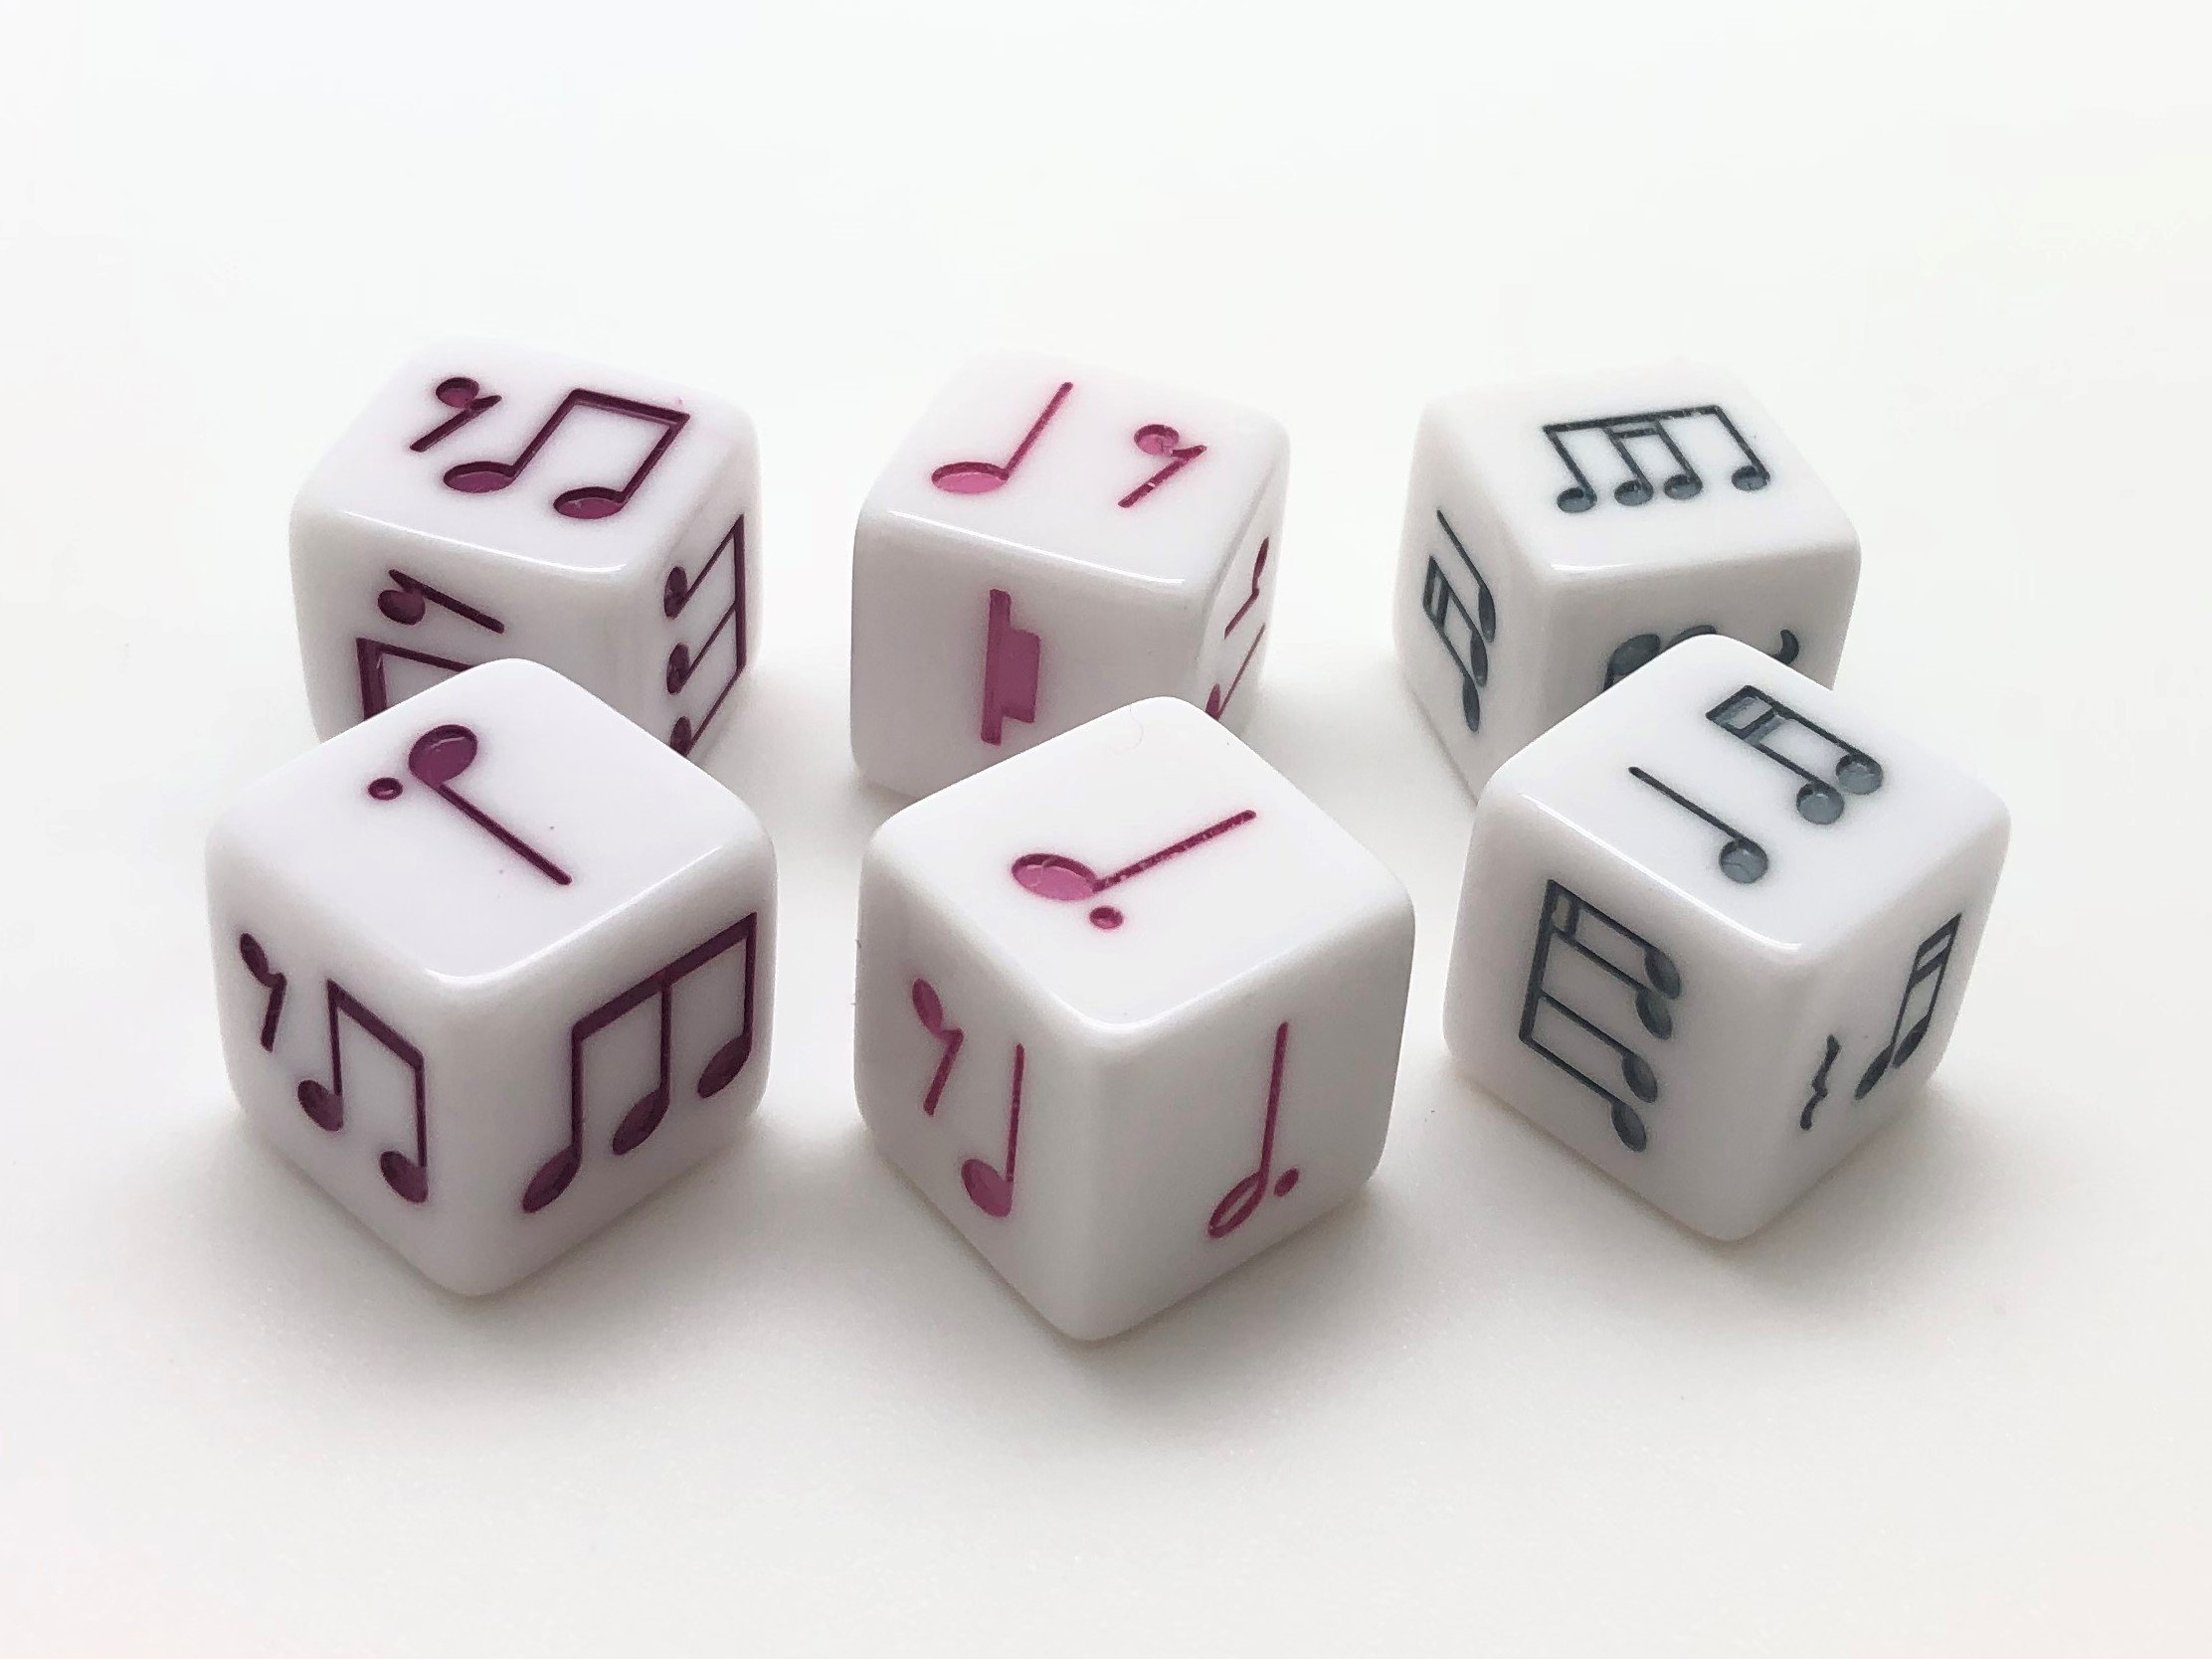 16 Mm Dotted Quarter Notes Dice Variety